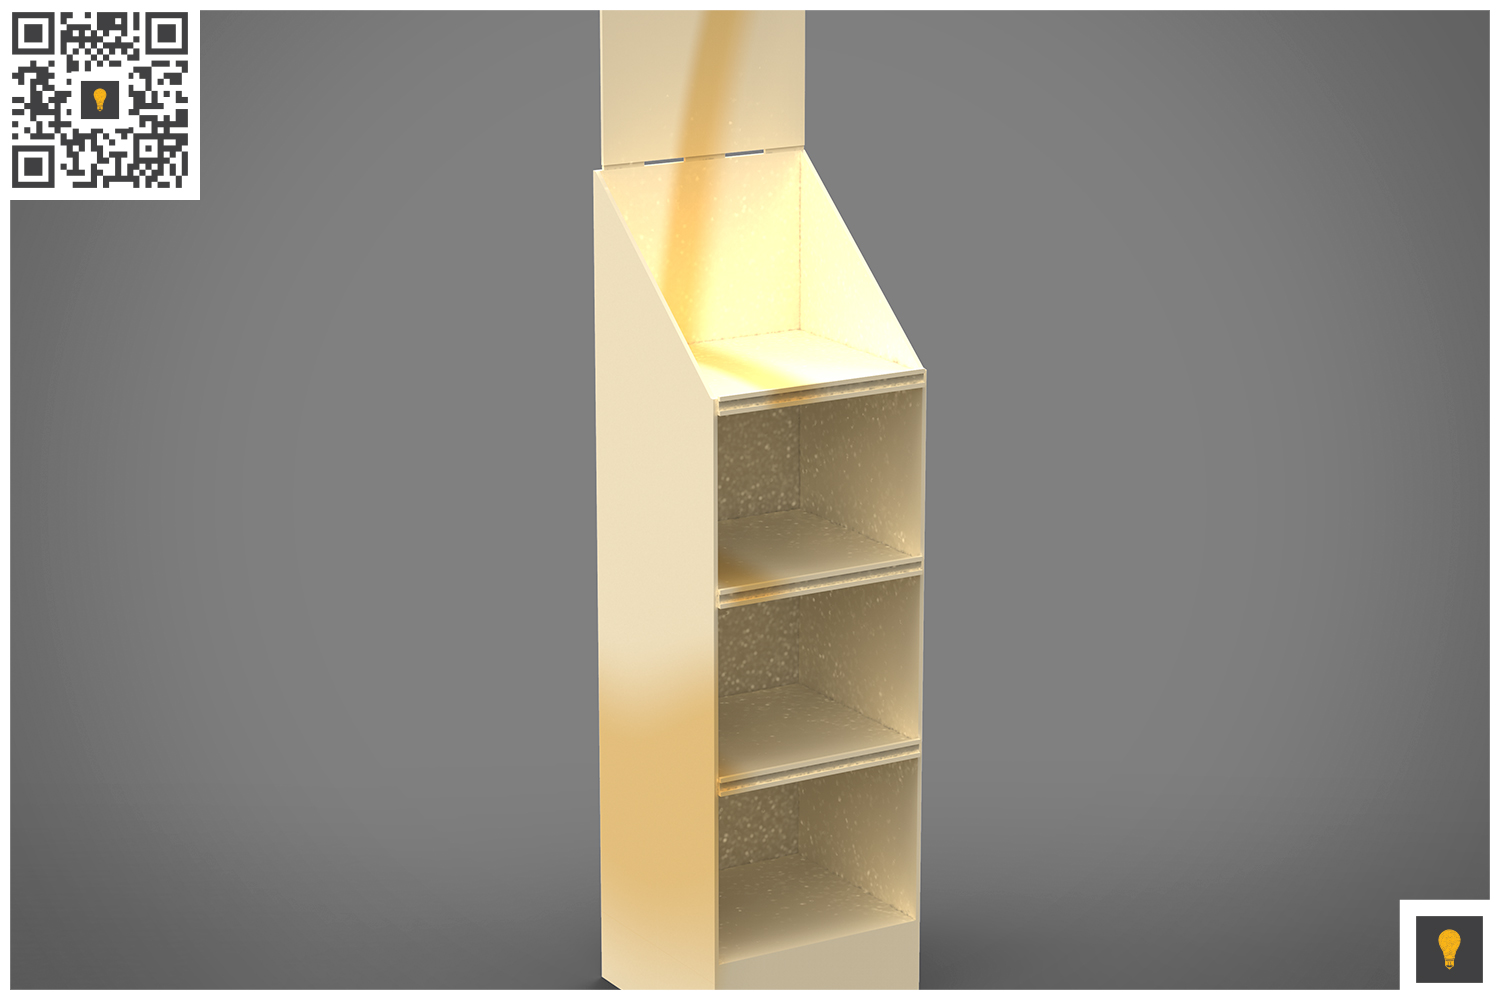 Promotional Store Shelf Stand 3D Render example image 11